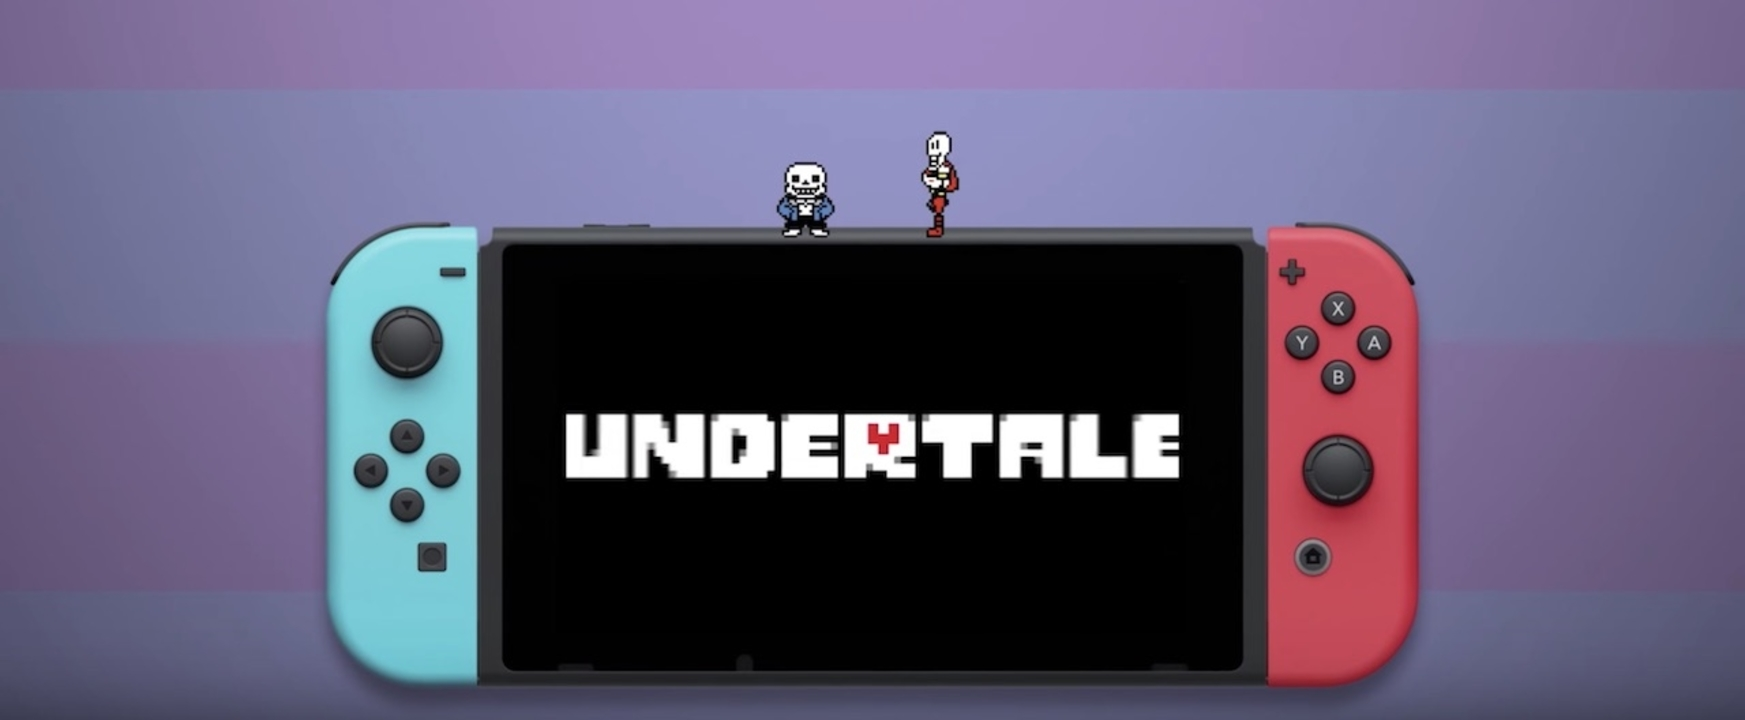 Undertale Nintendo Switch Arrives Next Month, Physical